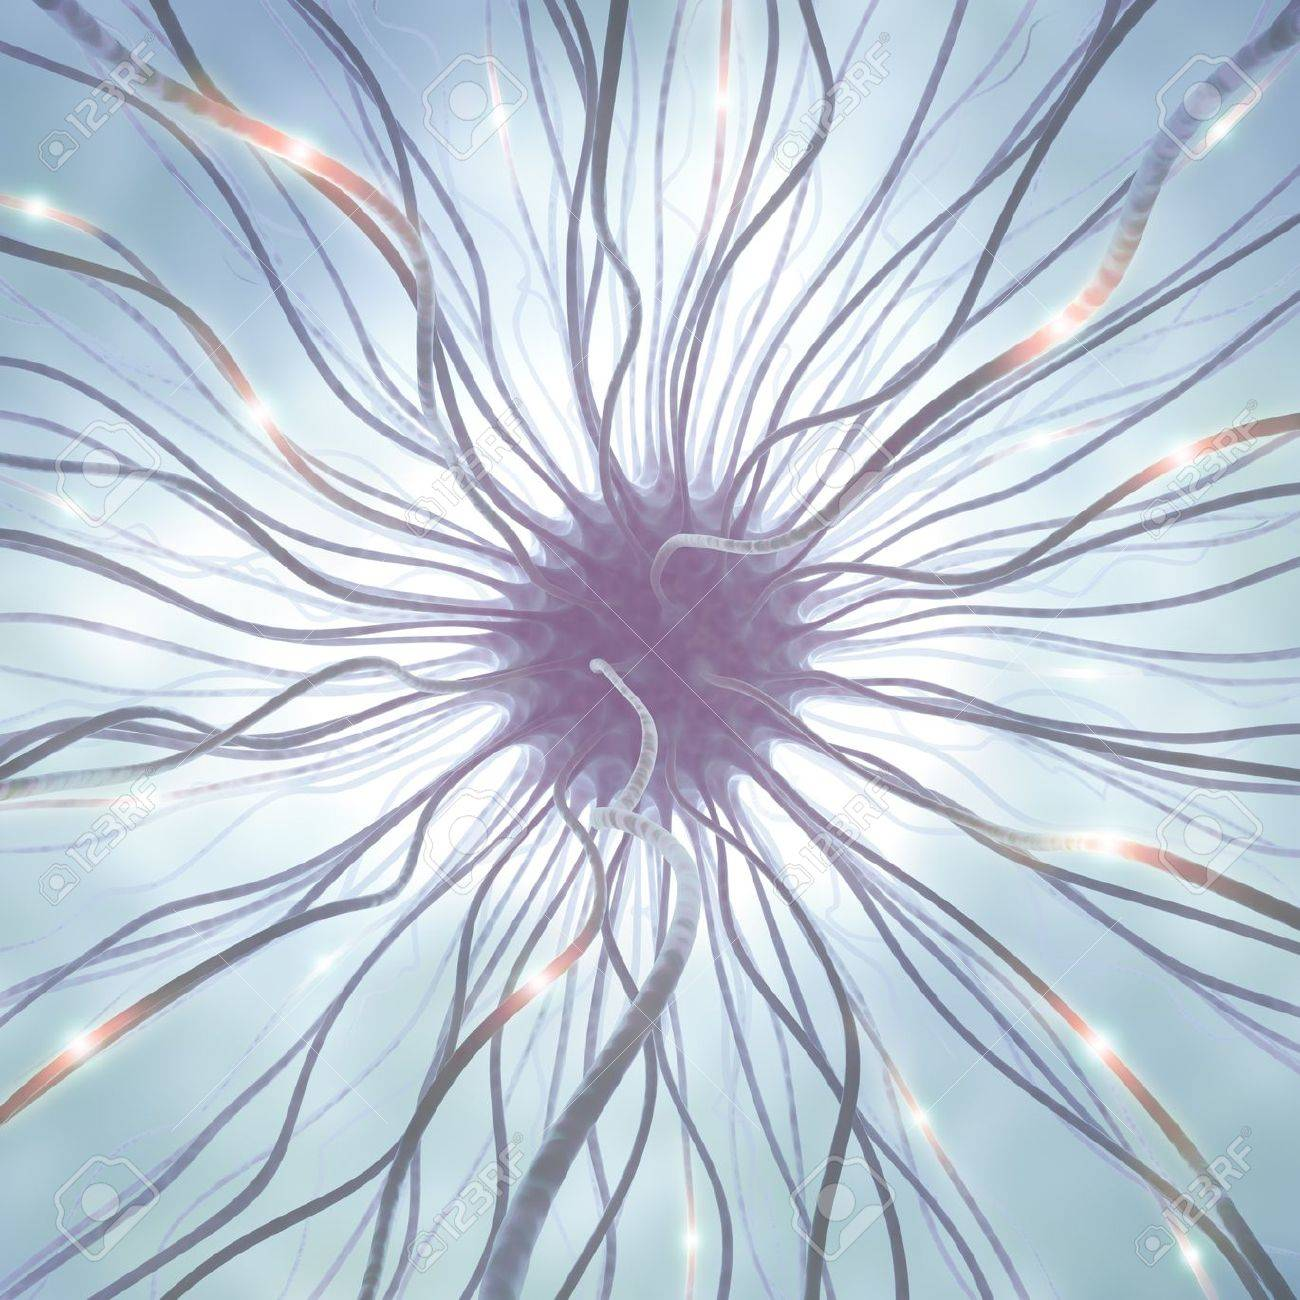 Interconnected neurons transferring information with electrical pulses. - 10803477